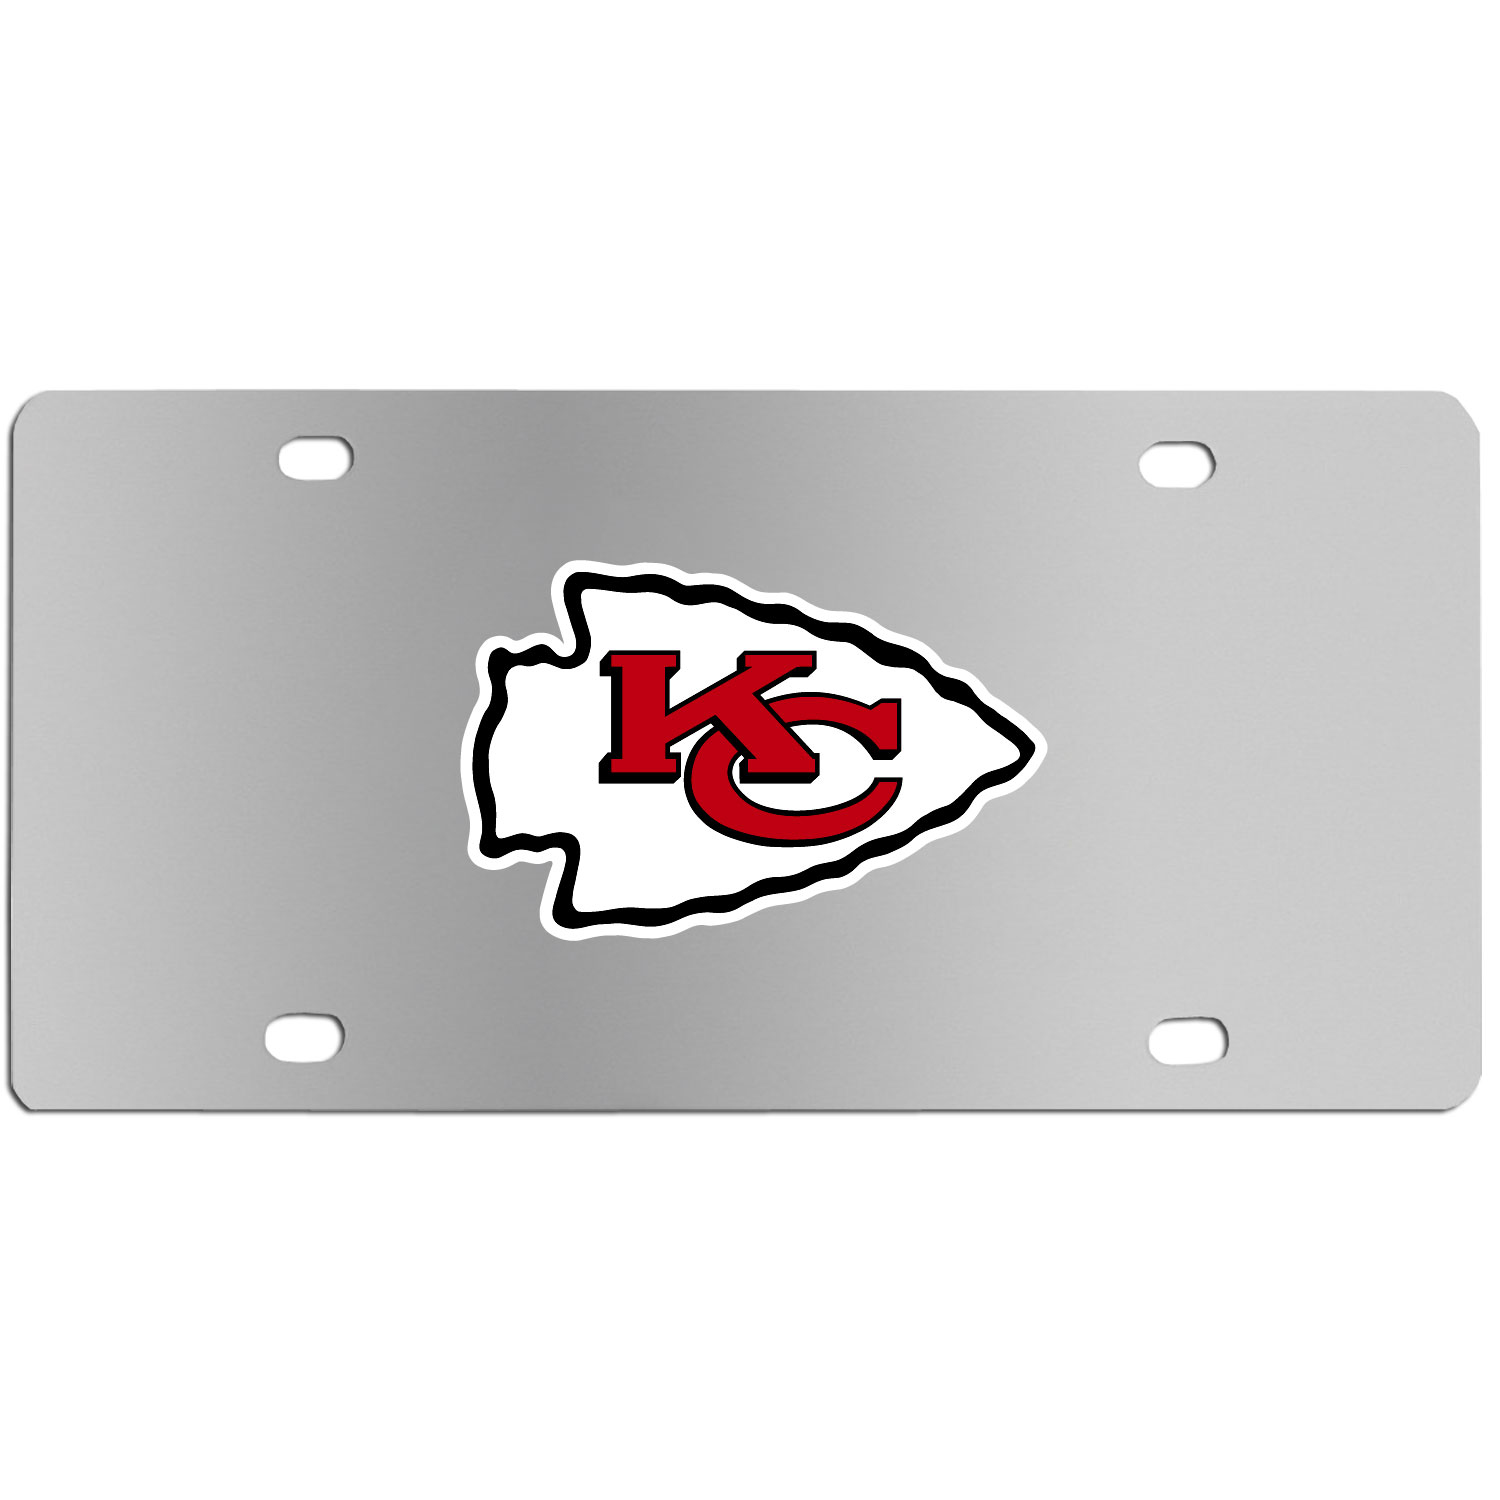 Kansas City Chiefs Steel License Plate Wall Plaque - This high-quality stainless steel license plate features a detailed team logo on a the polished surface. The attractive plate is perfect for wall mounting in your home or office to become the perfect die-hard Kansas City Chiefs fan decor.